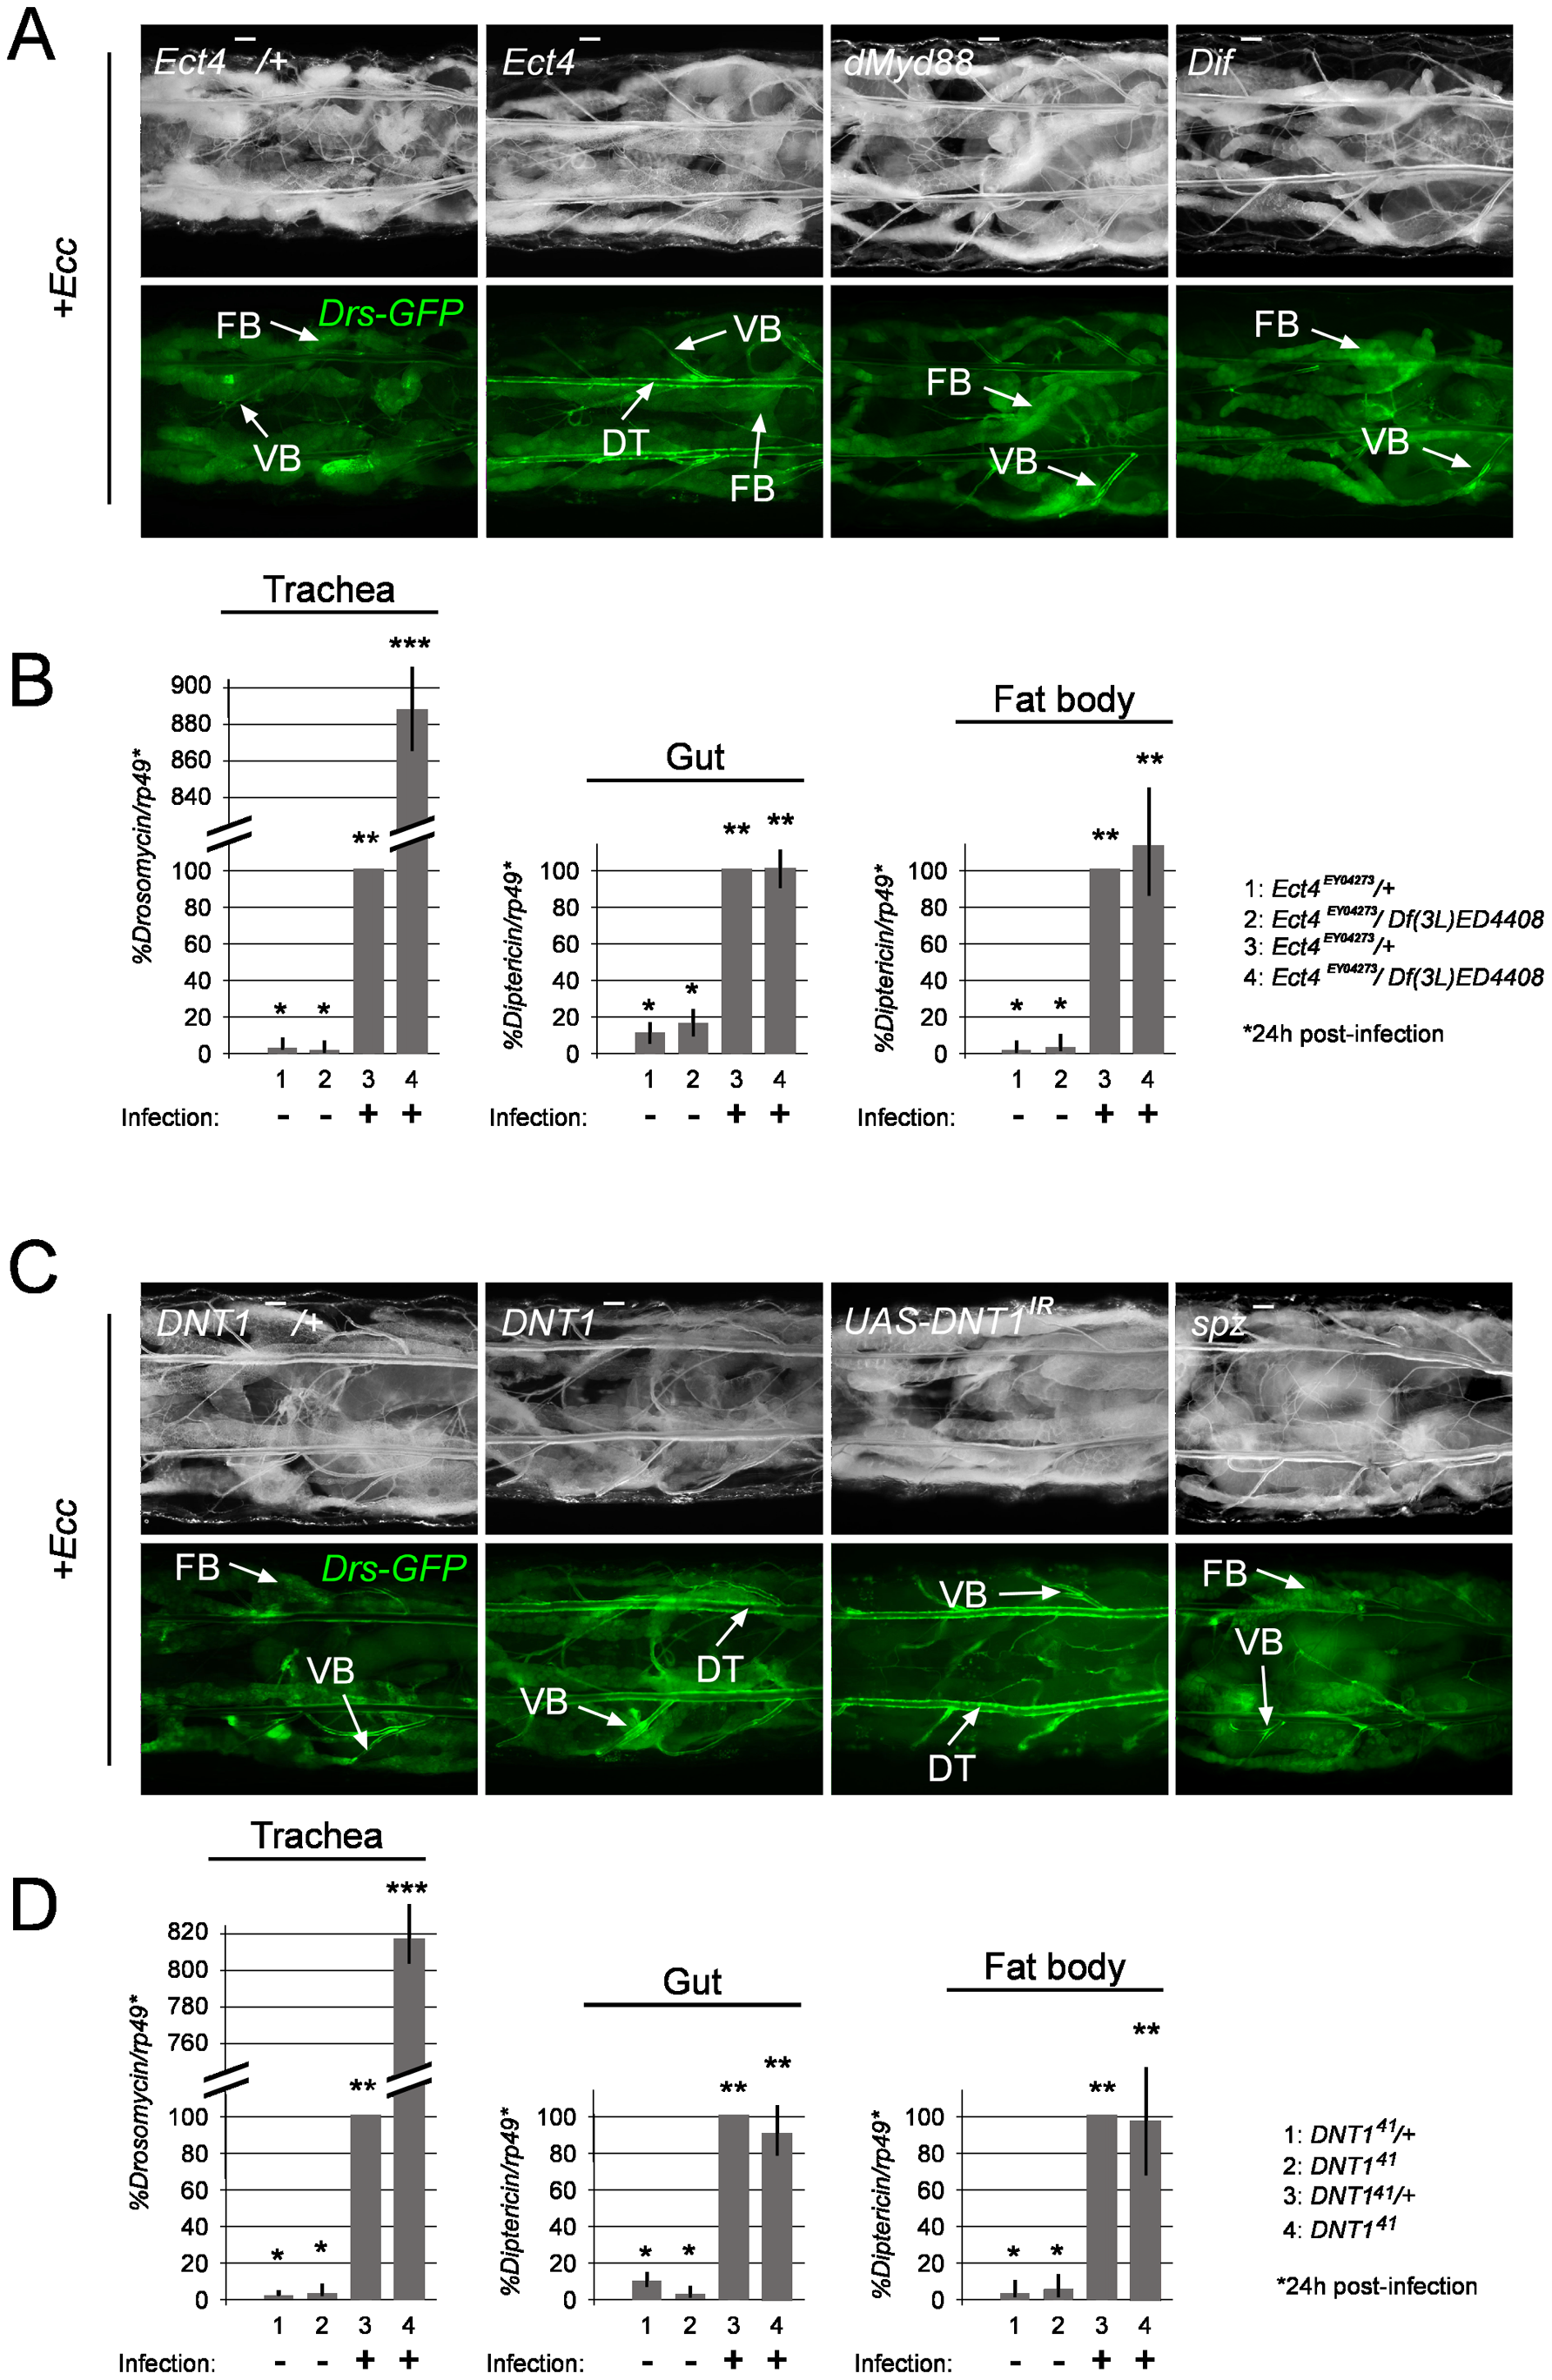 The TIR domain-containing protein Ect4/SARM and the cytokine DNT1/Spz2 negatively regulate tracheal immune response.